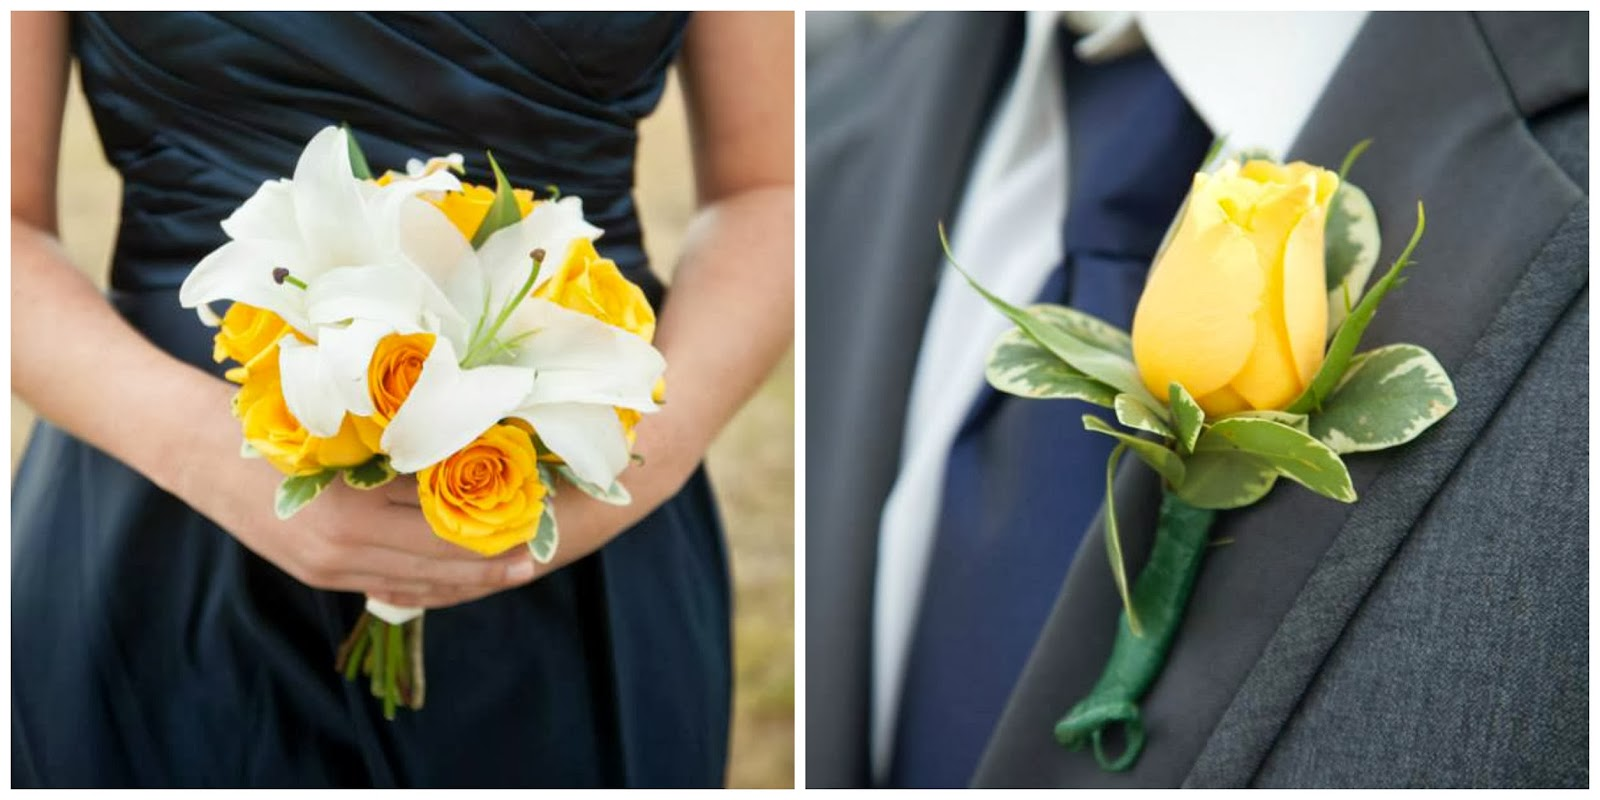 yellow rose, wedding party flowers